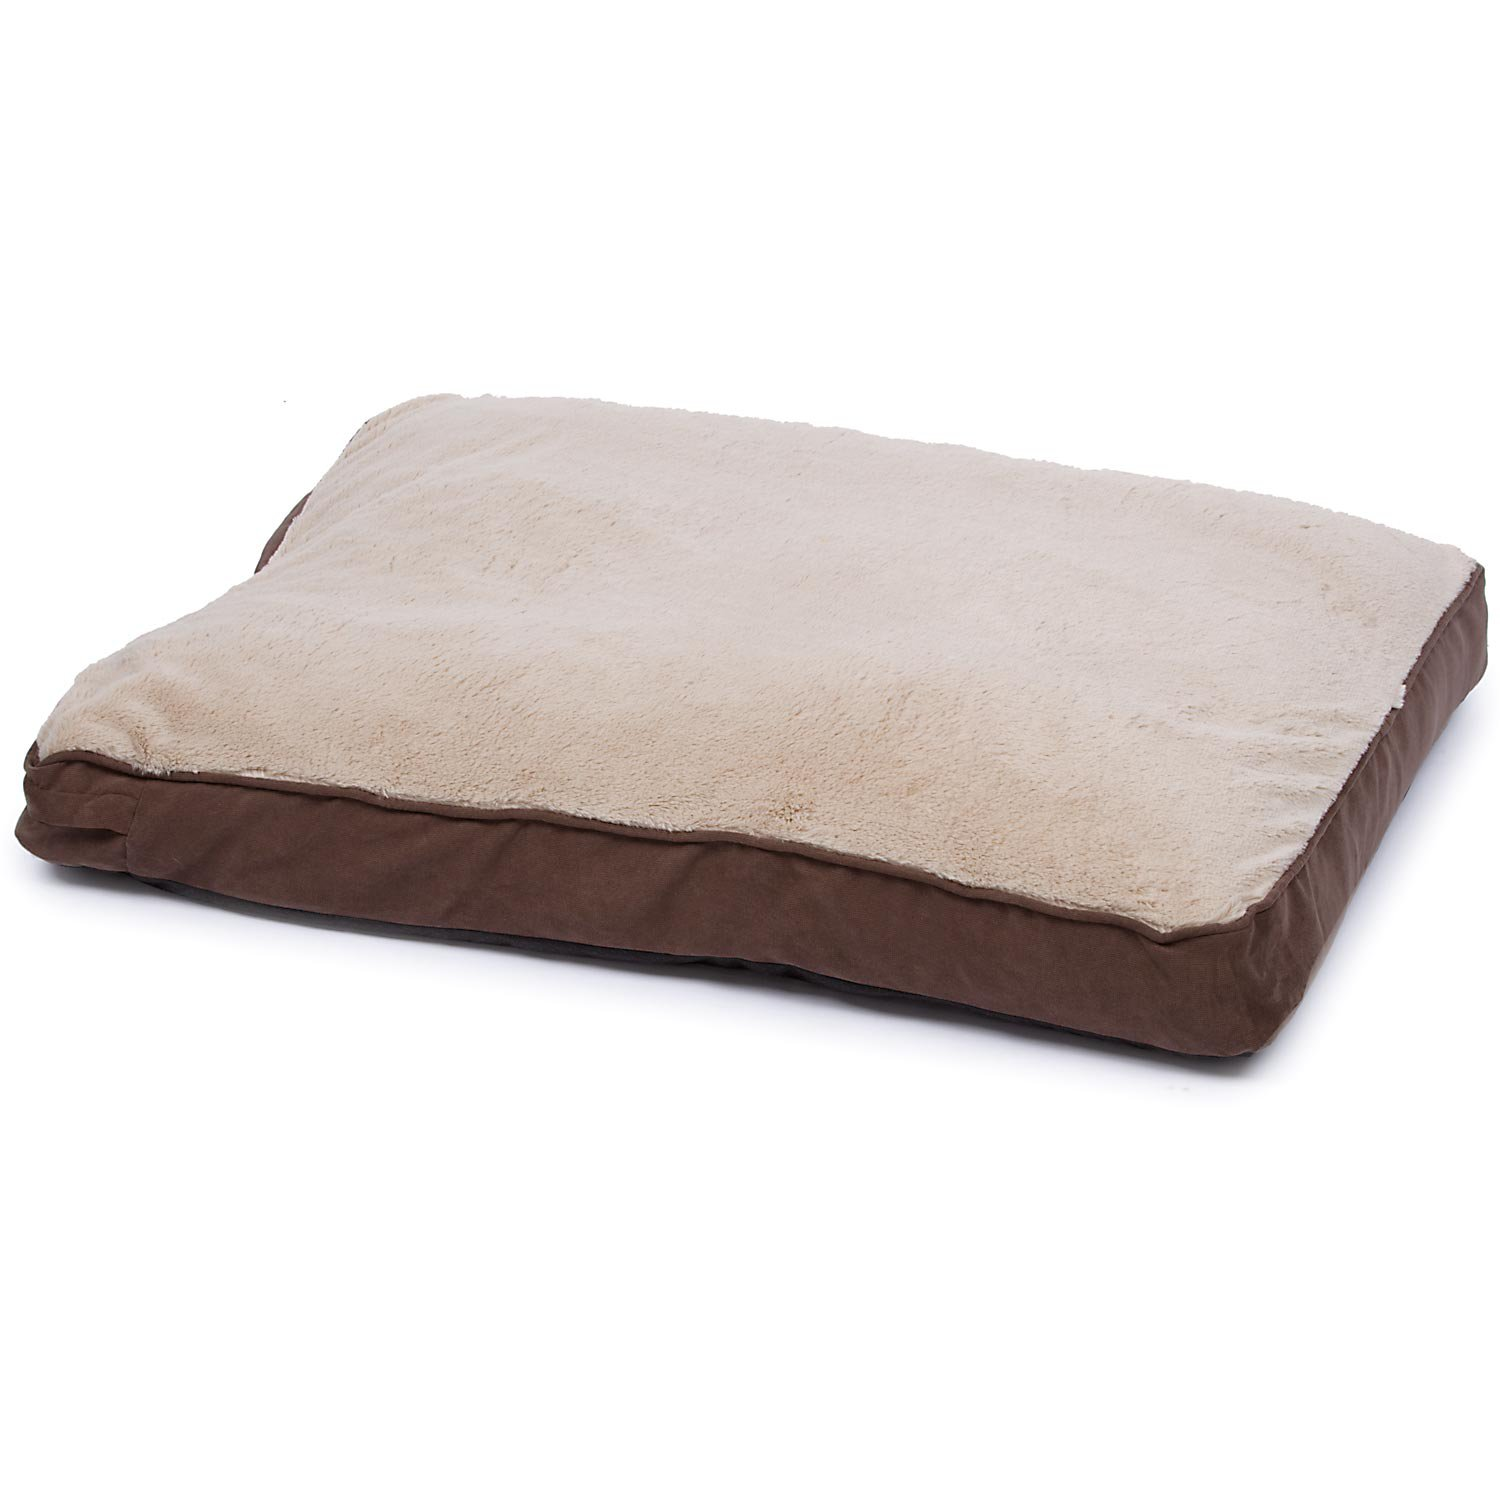 Small Bed Brown And Tan Memory Foam Rectangular Pillow Dog Bed Petco